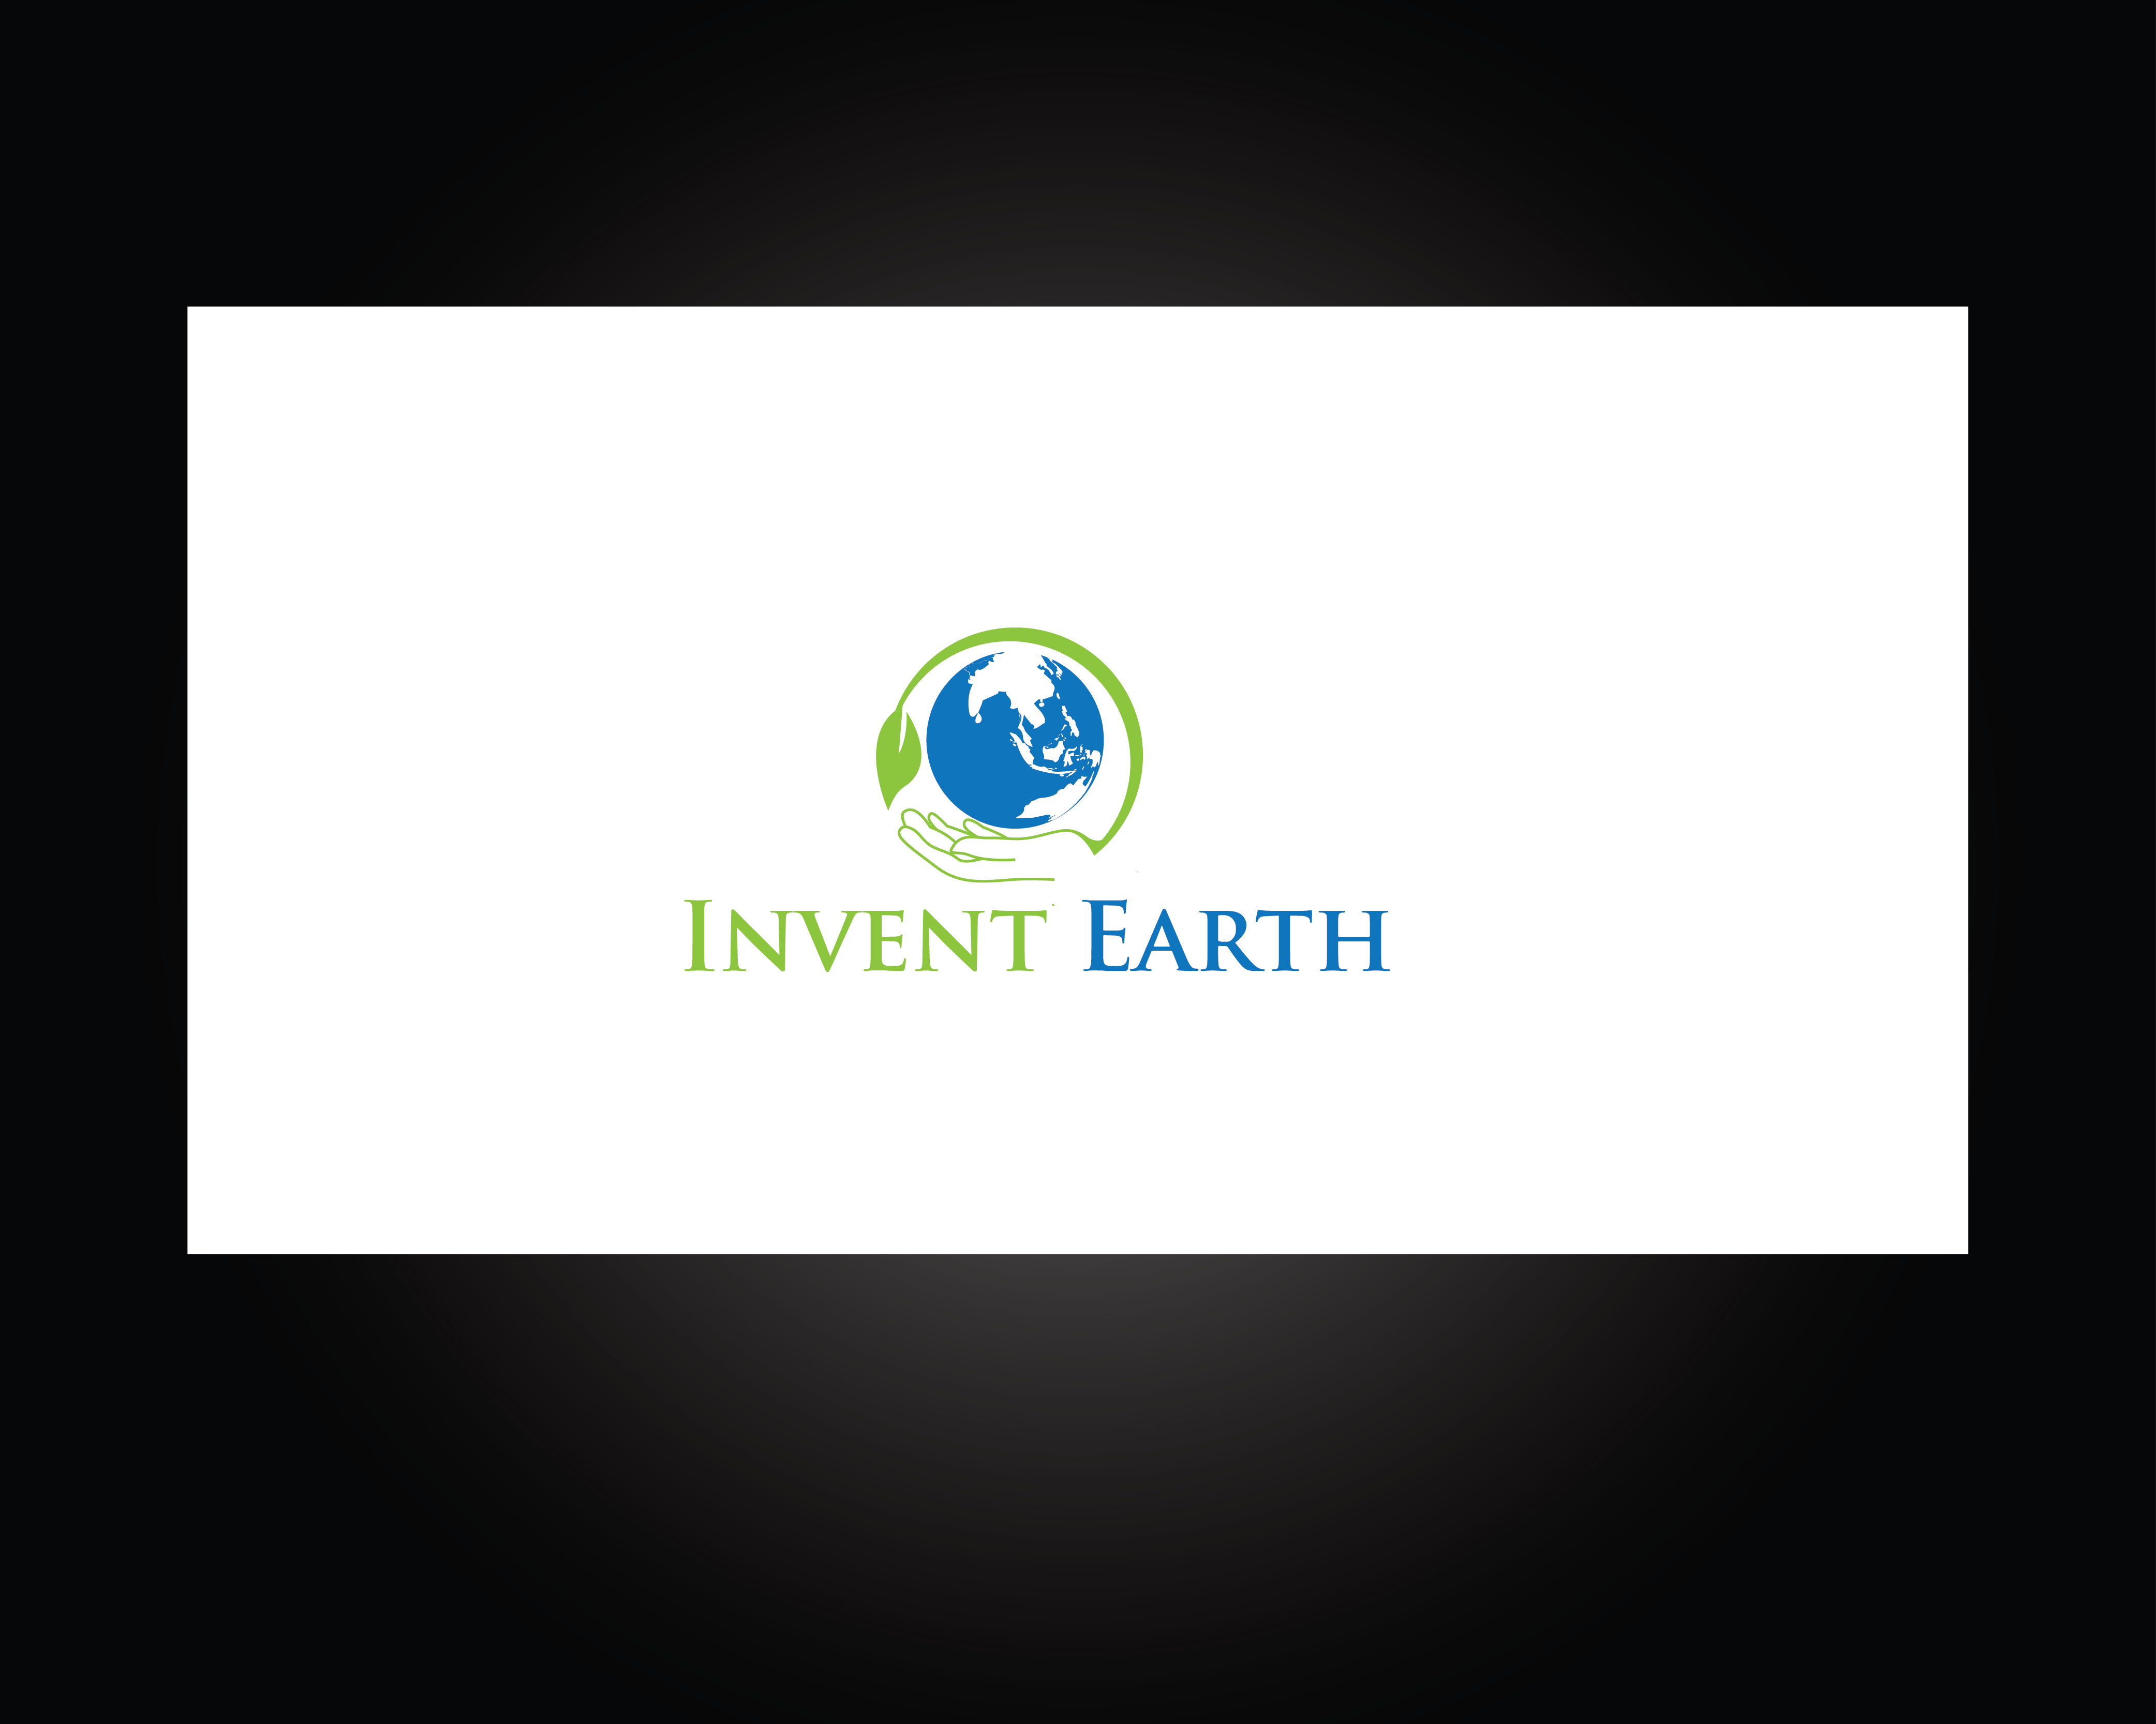 Logo Design by roc - Entry No. 2 in the Logo Design Contest Artistic Logo Design for Invent Earth.